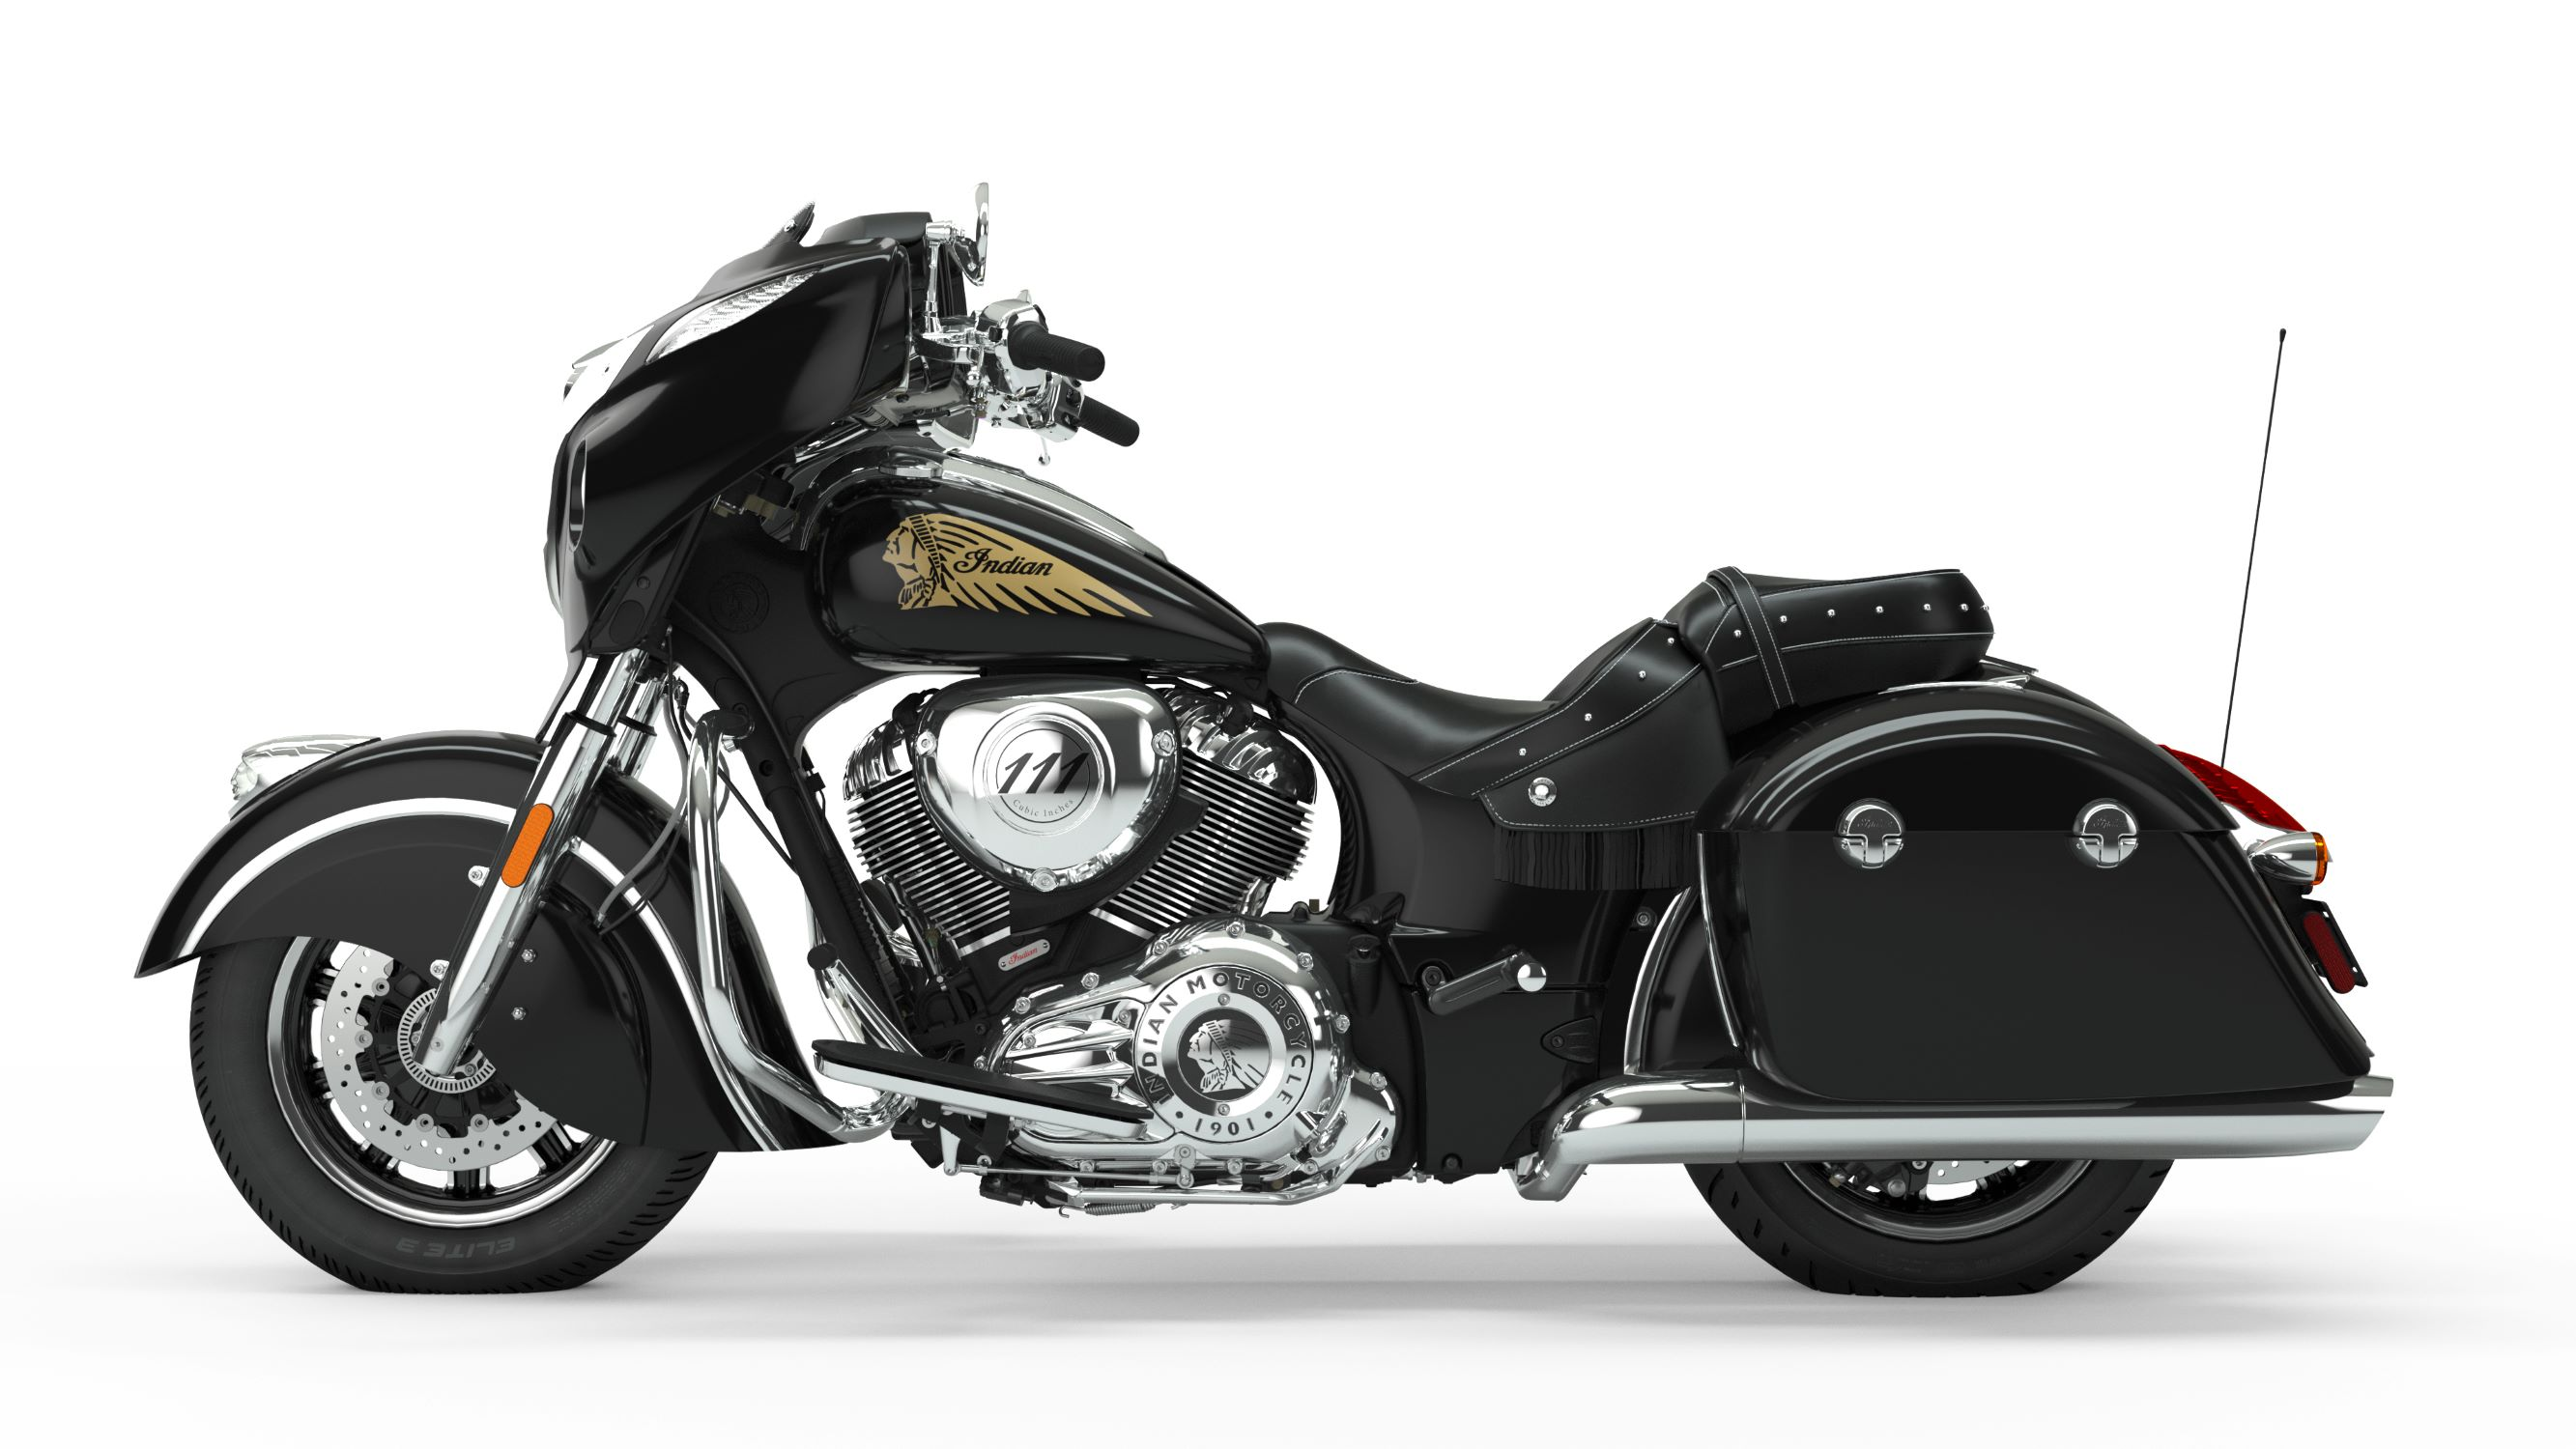 2019 Chieftain Classic Thunder Black Left